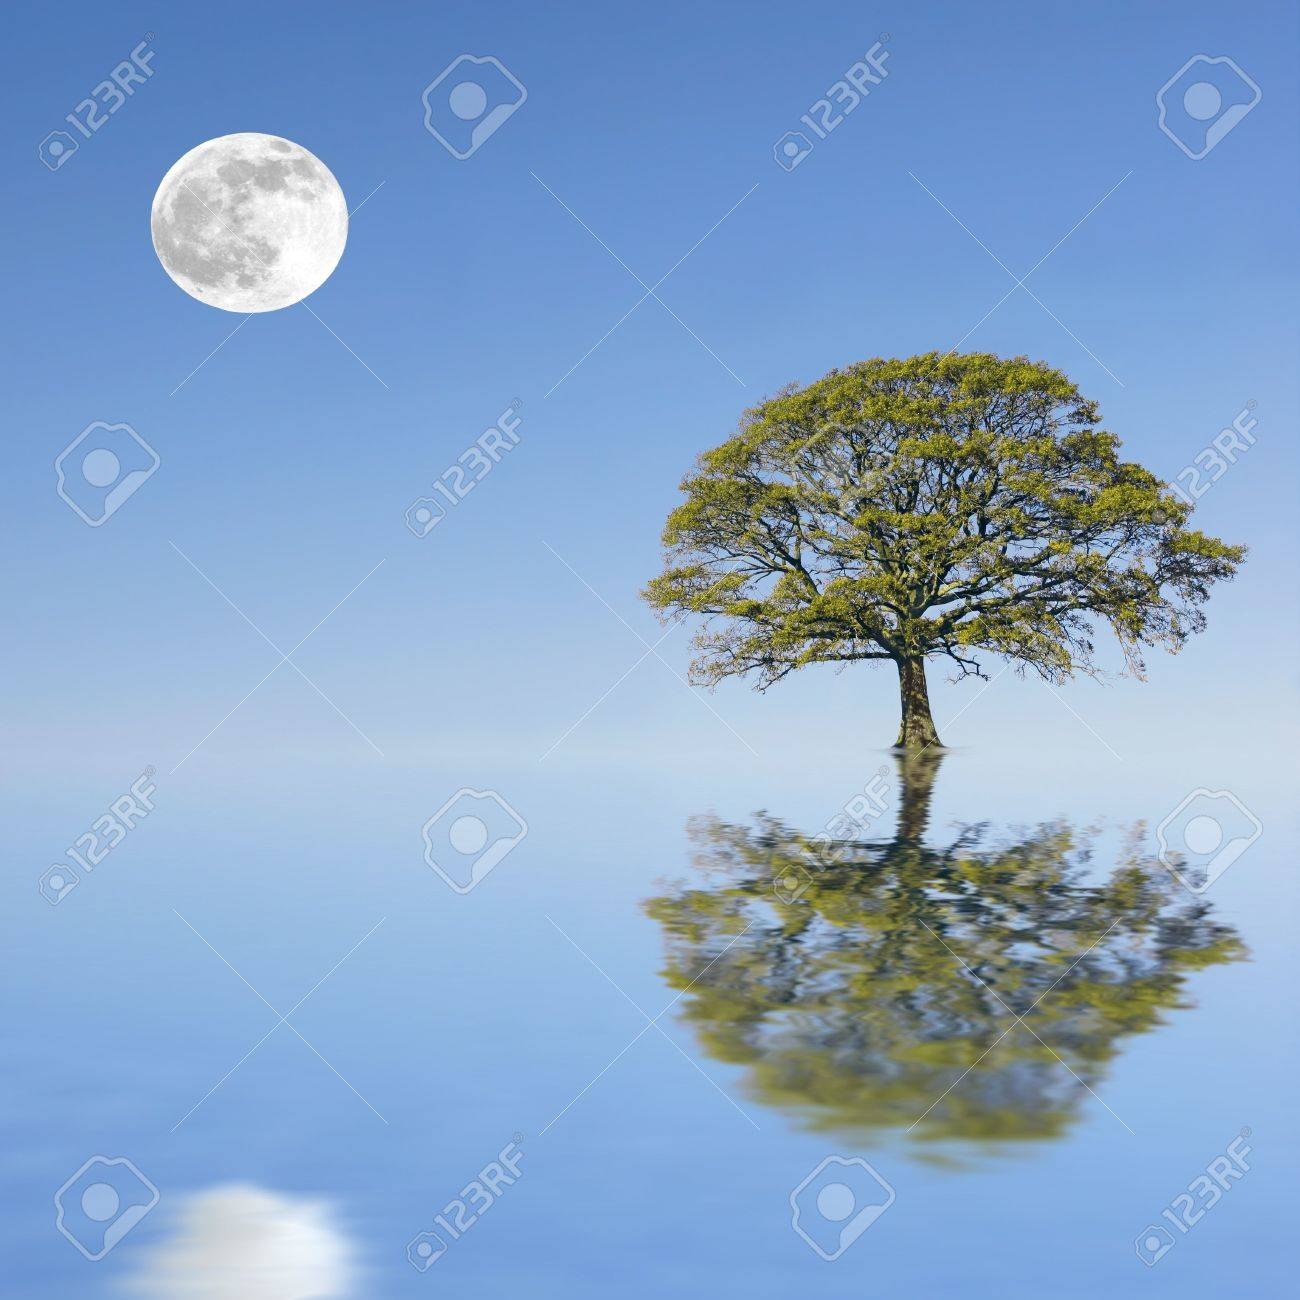 Fantasy abstract of a partially submerged oak tree in summer set against a background of a full moon and blue sky, reflected over water. Stock Photo - 2765886